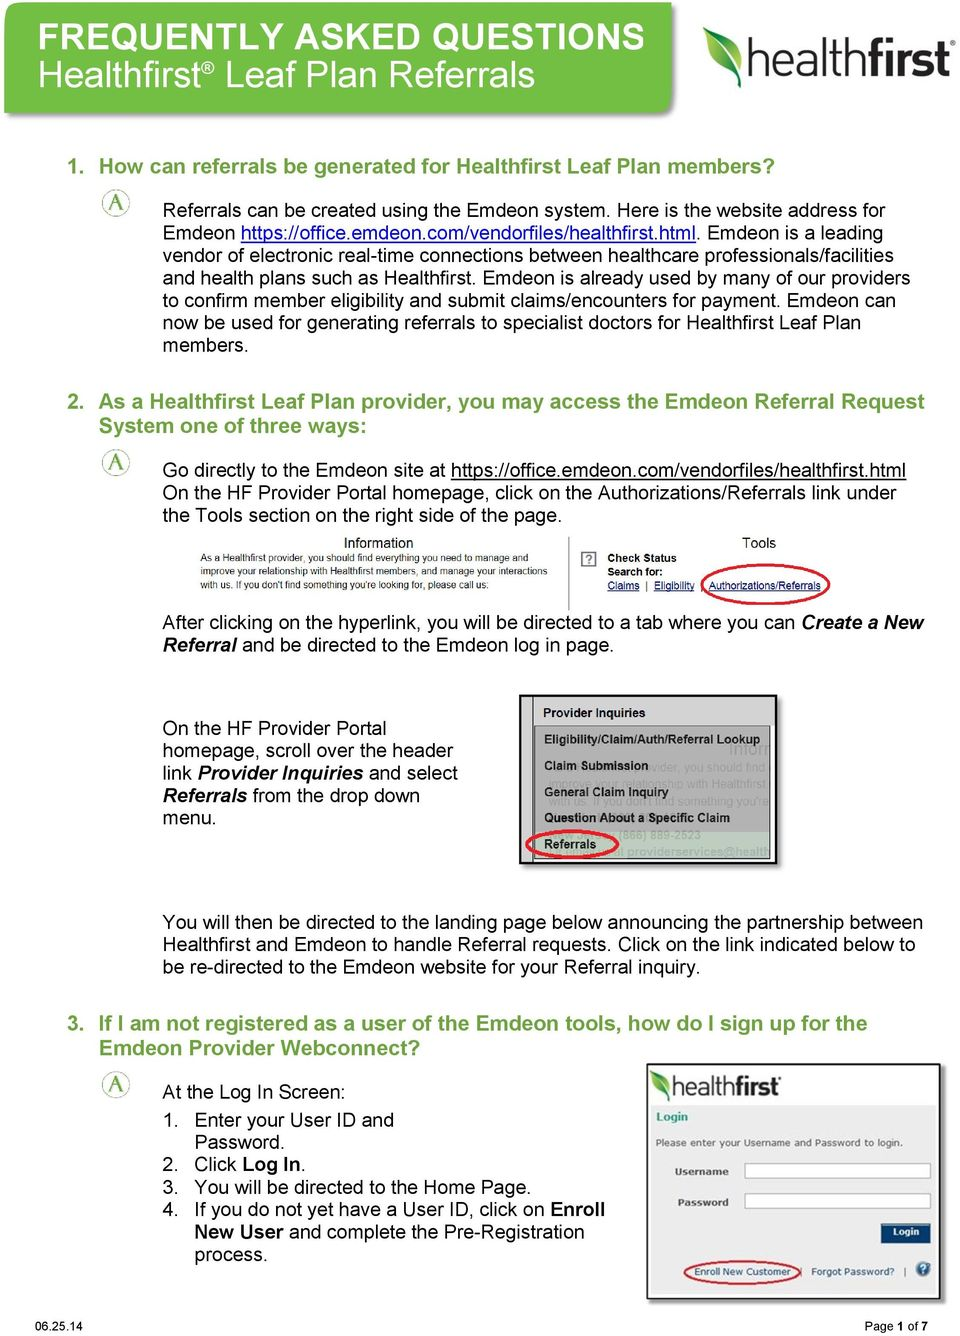 FREQUENTLY ASKED QUESTIONS Healthfirst Leaf Plan Referrals - PDF